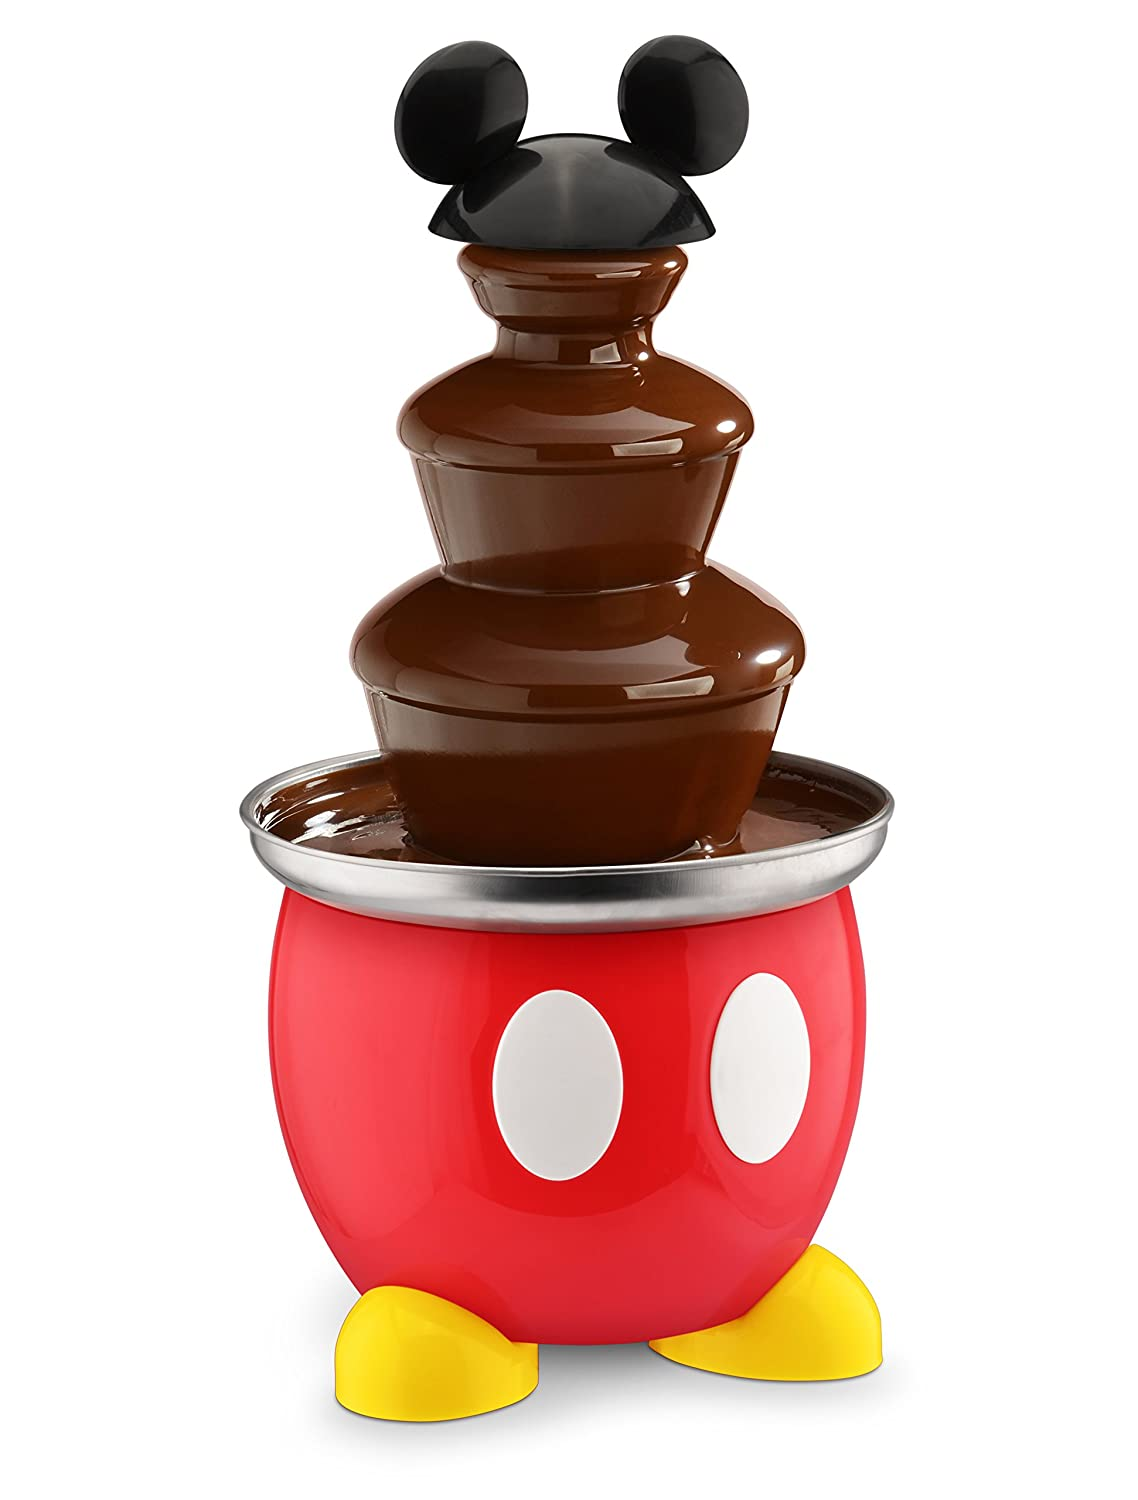 Top 10 Best Chocolate Fountains Best Chocolate Fountains